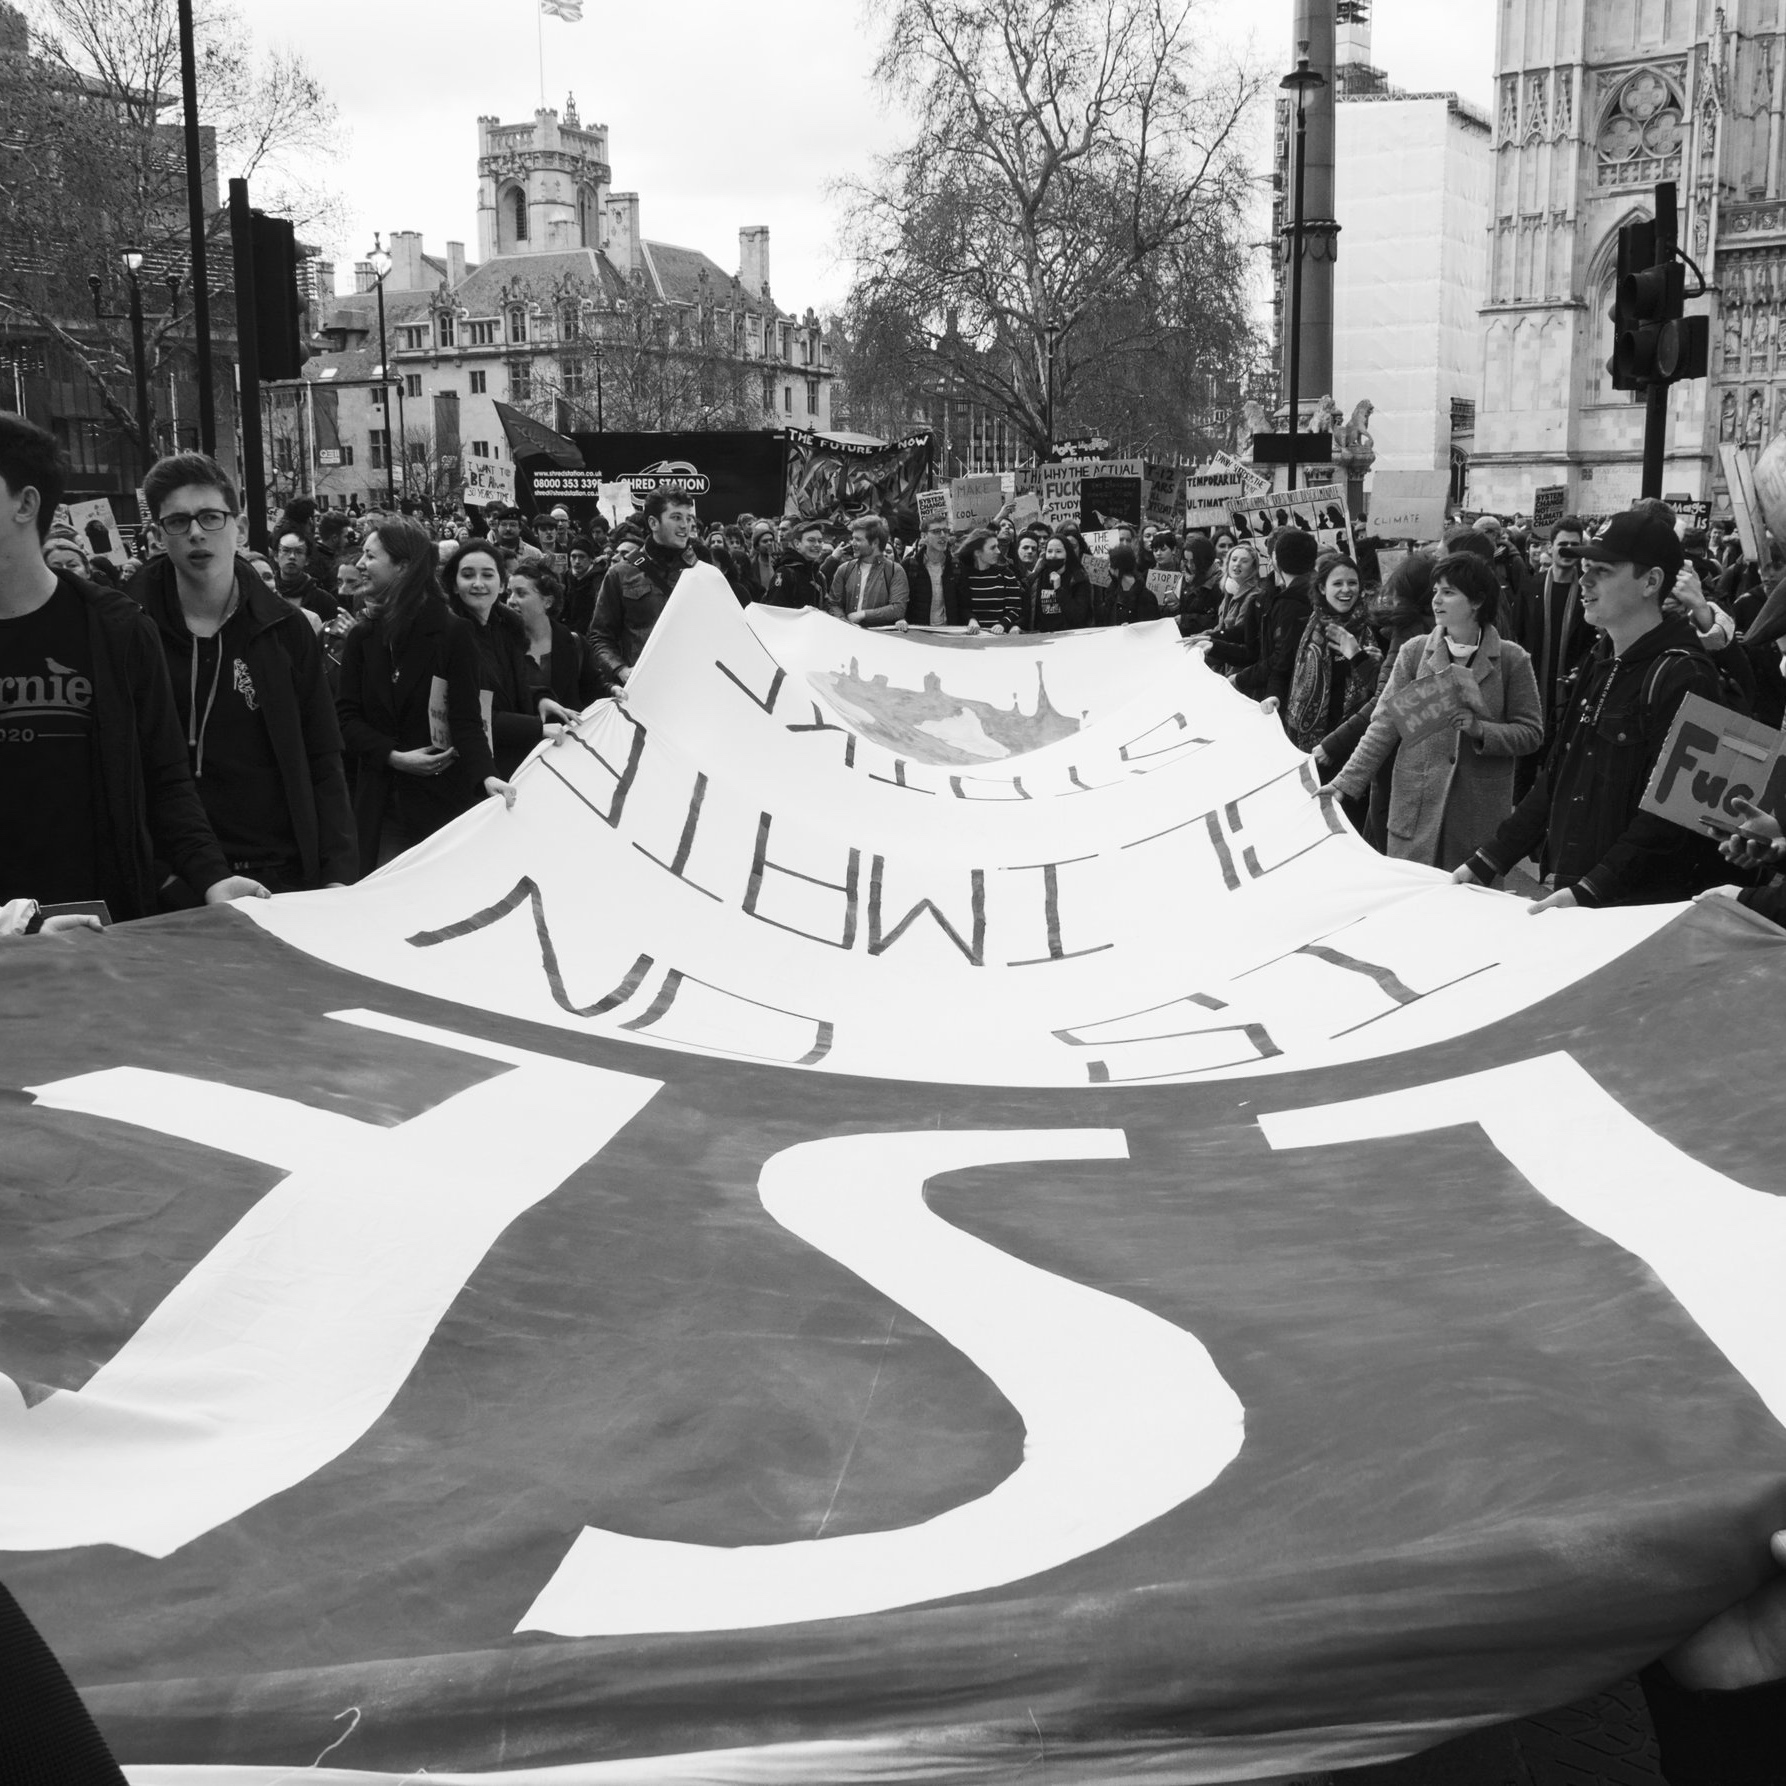 LSE's climate strike: in words, pictures and music